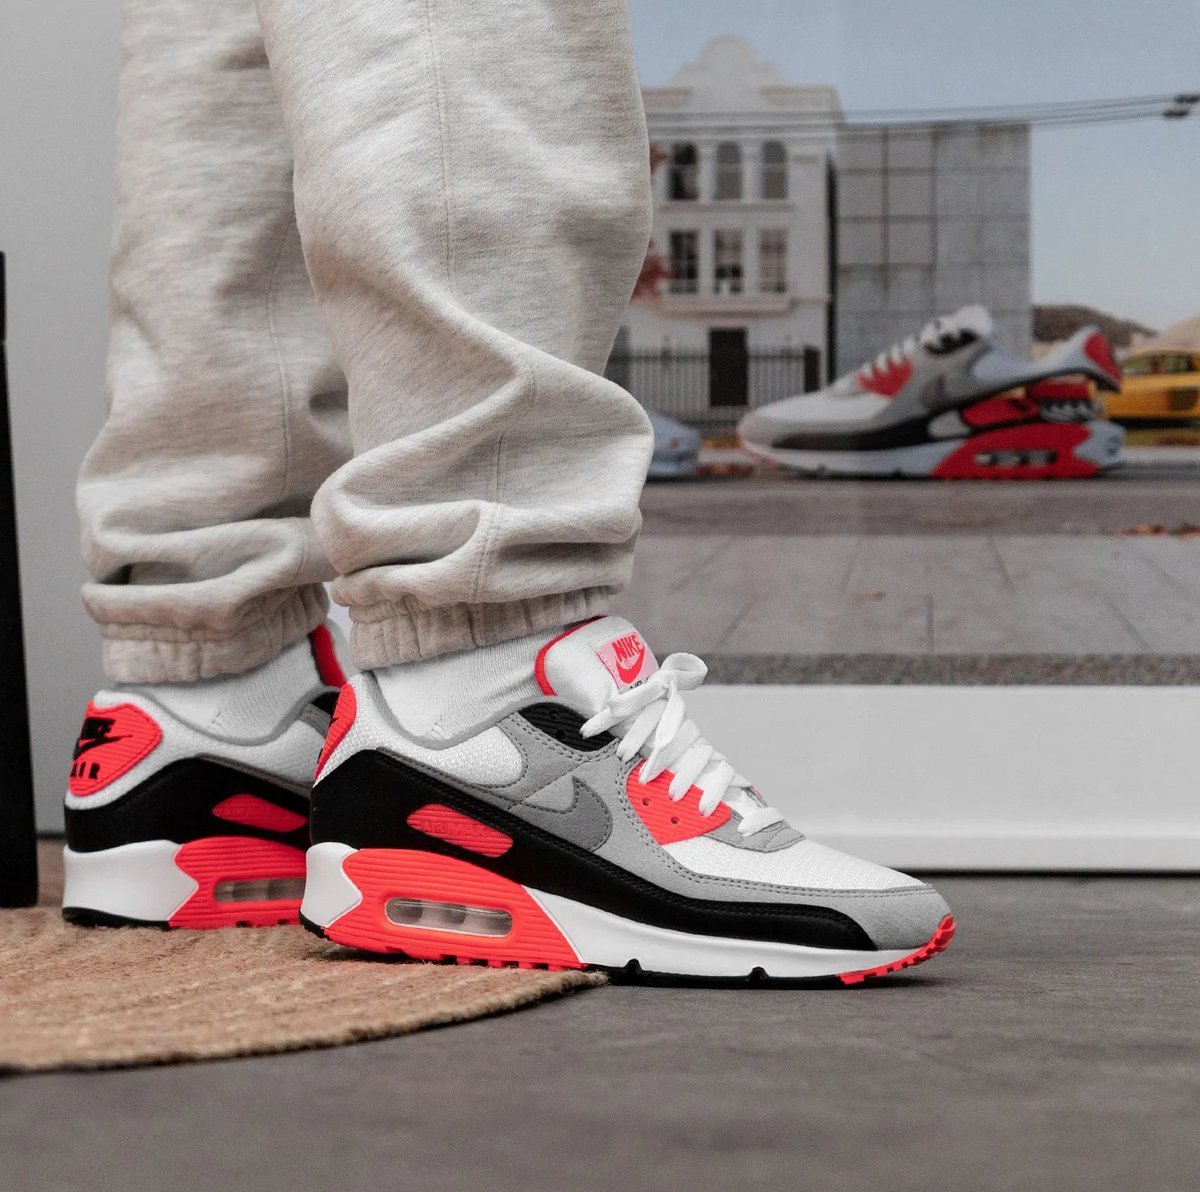 EASY COP Nike Air Max III 'Radiant Red' =  2